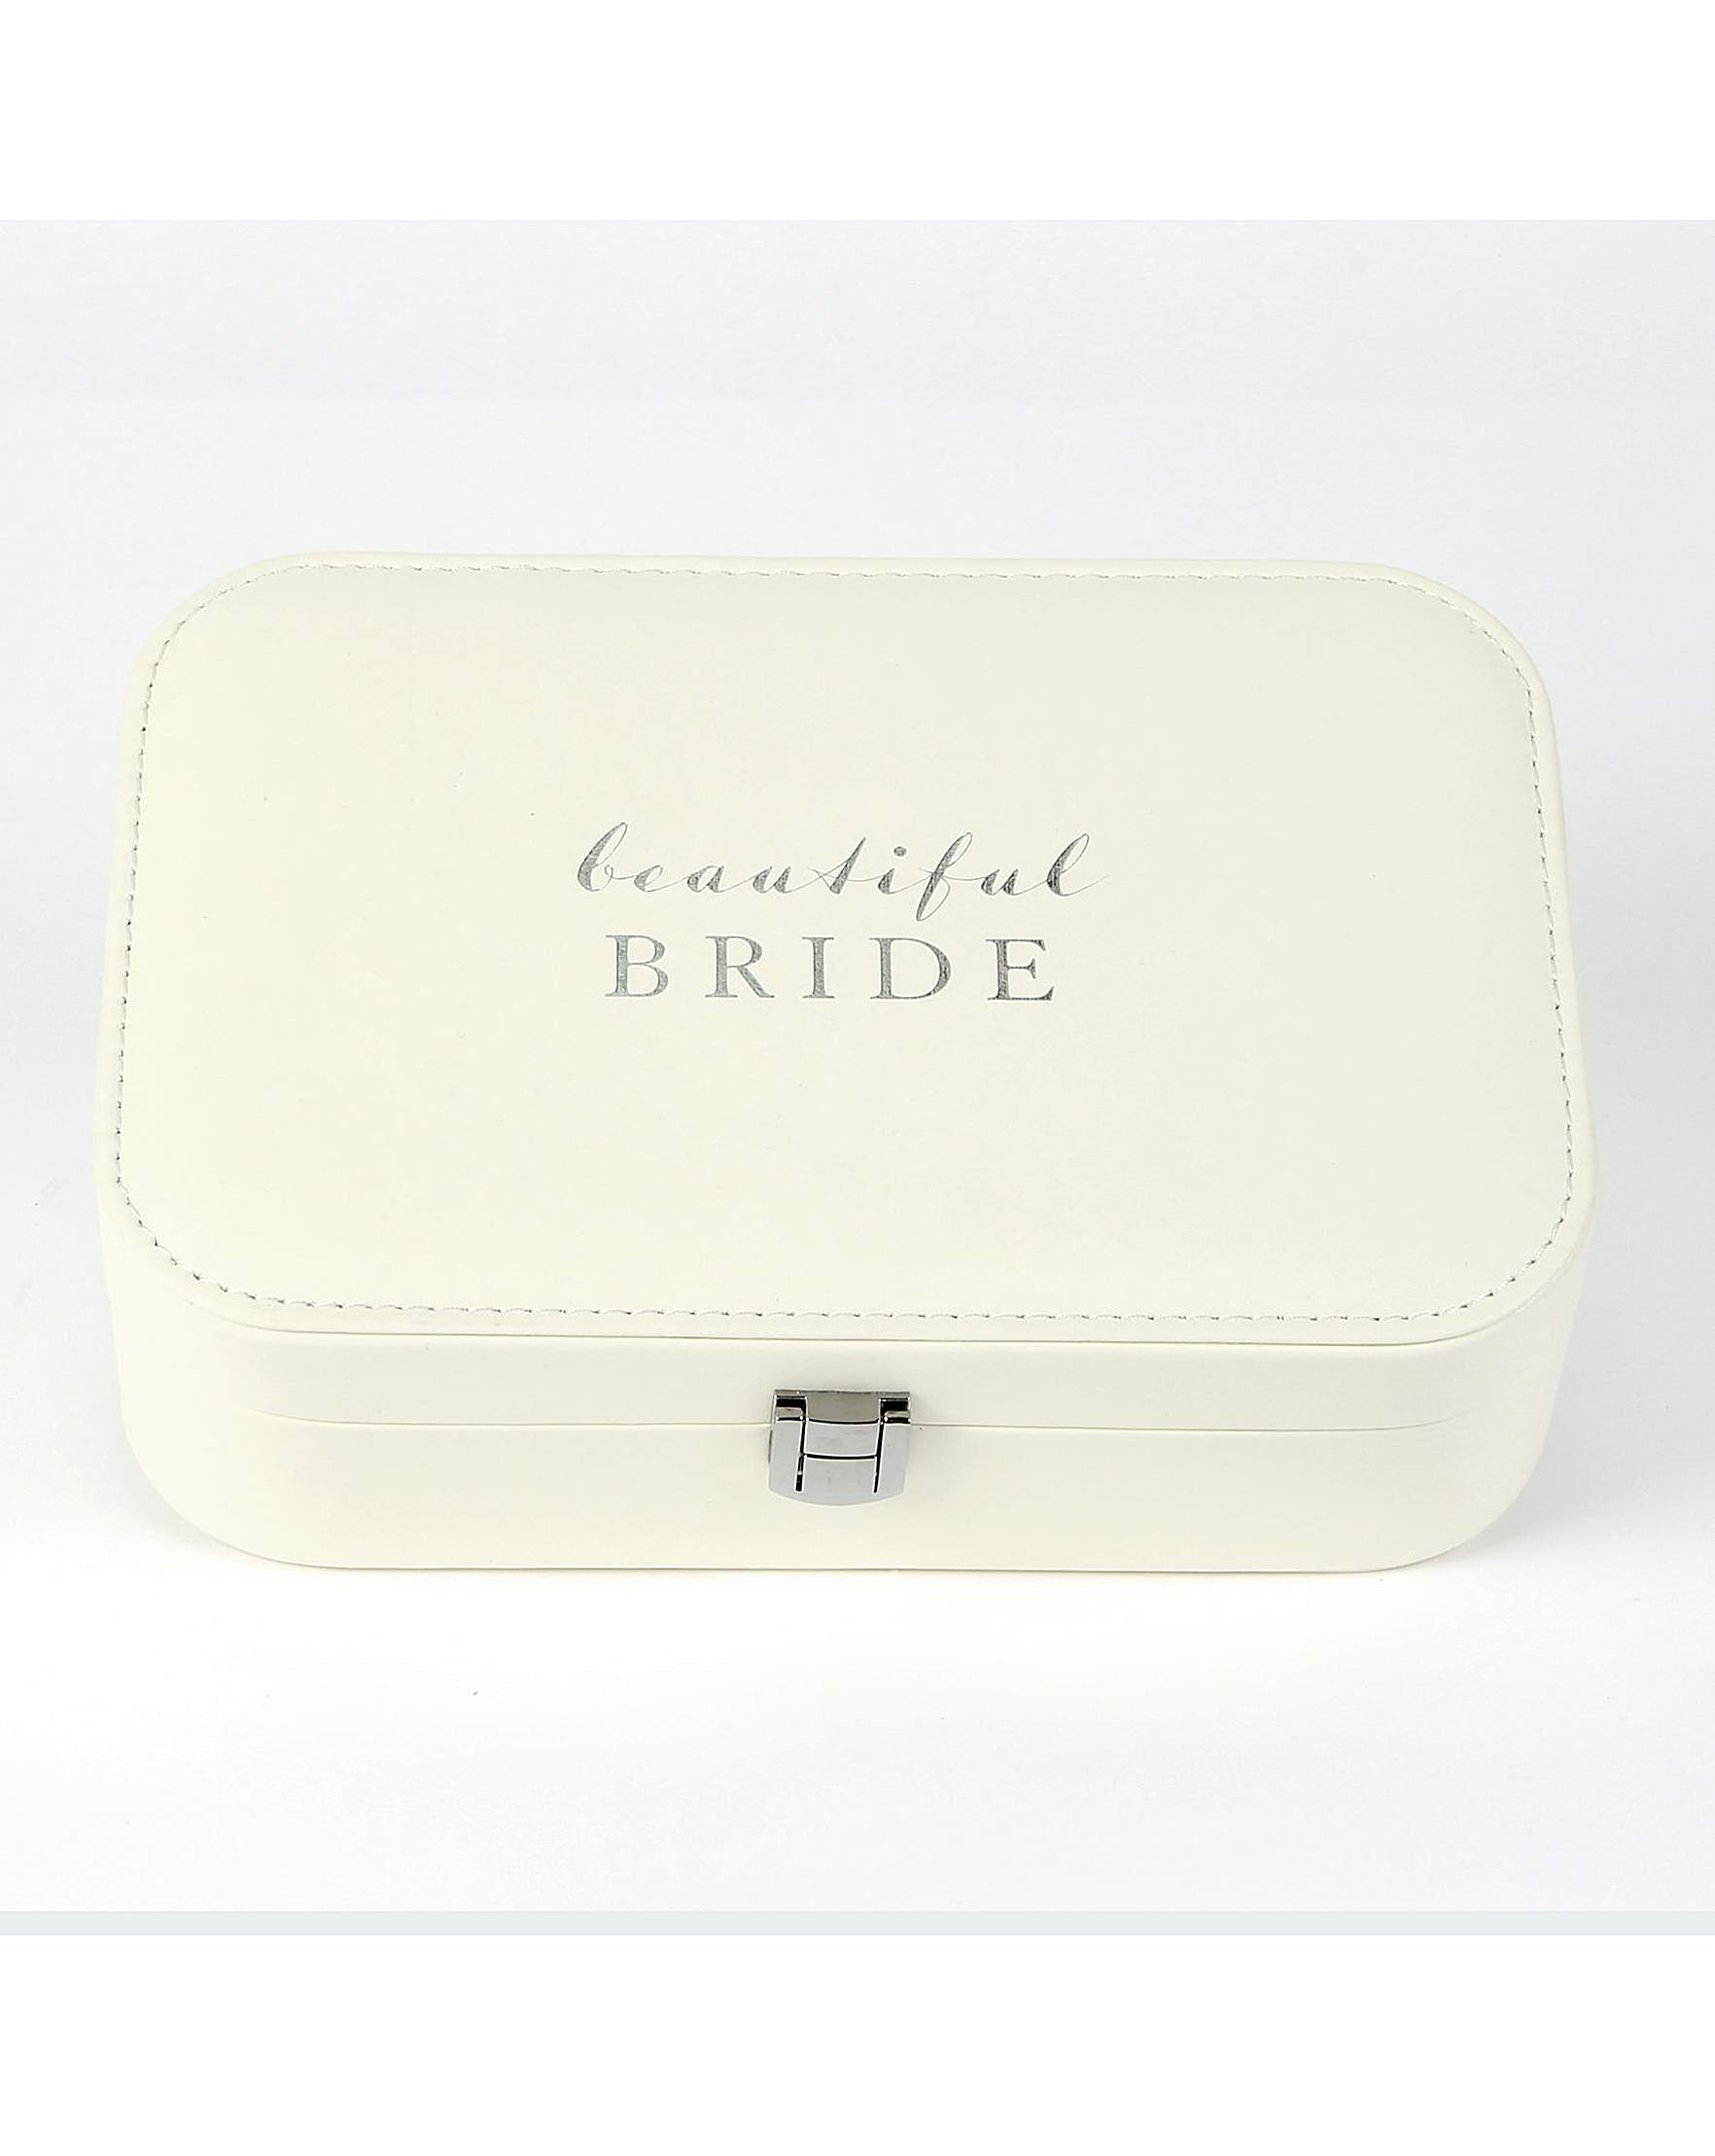 Beautiful Bride Jewellery Box for sale